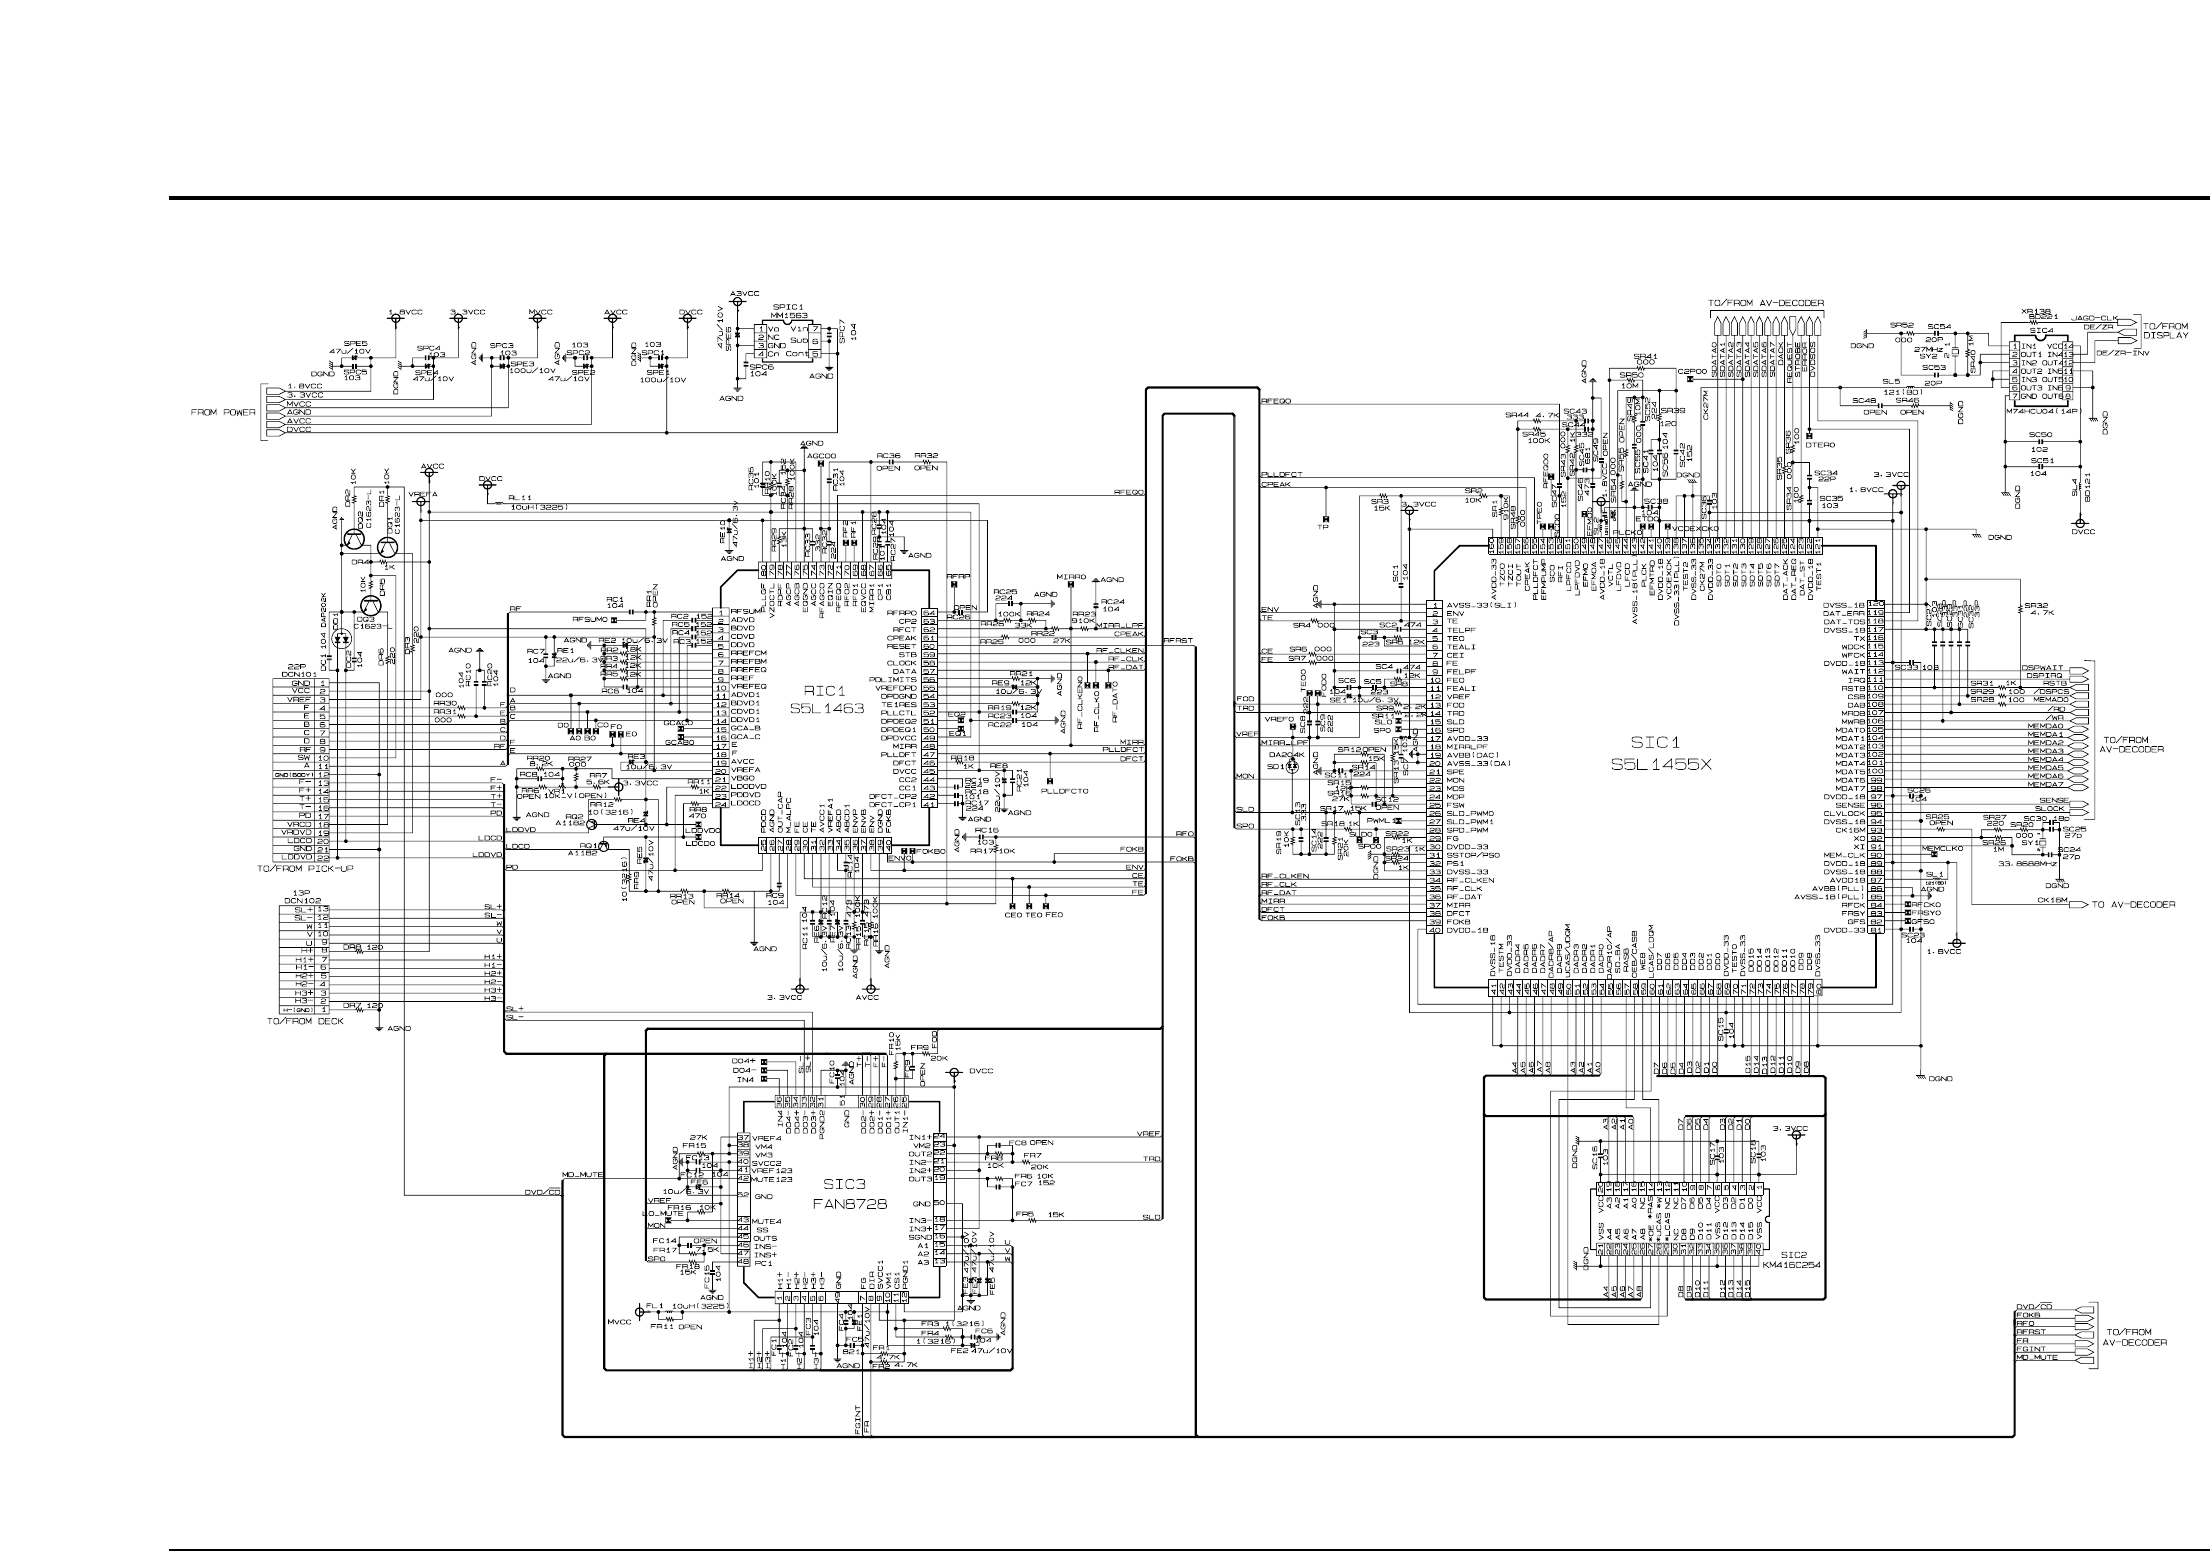 Sony dvd player circuit diagram / Shining hearts episode